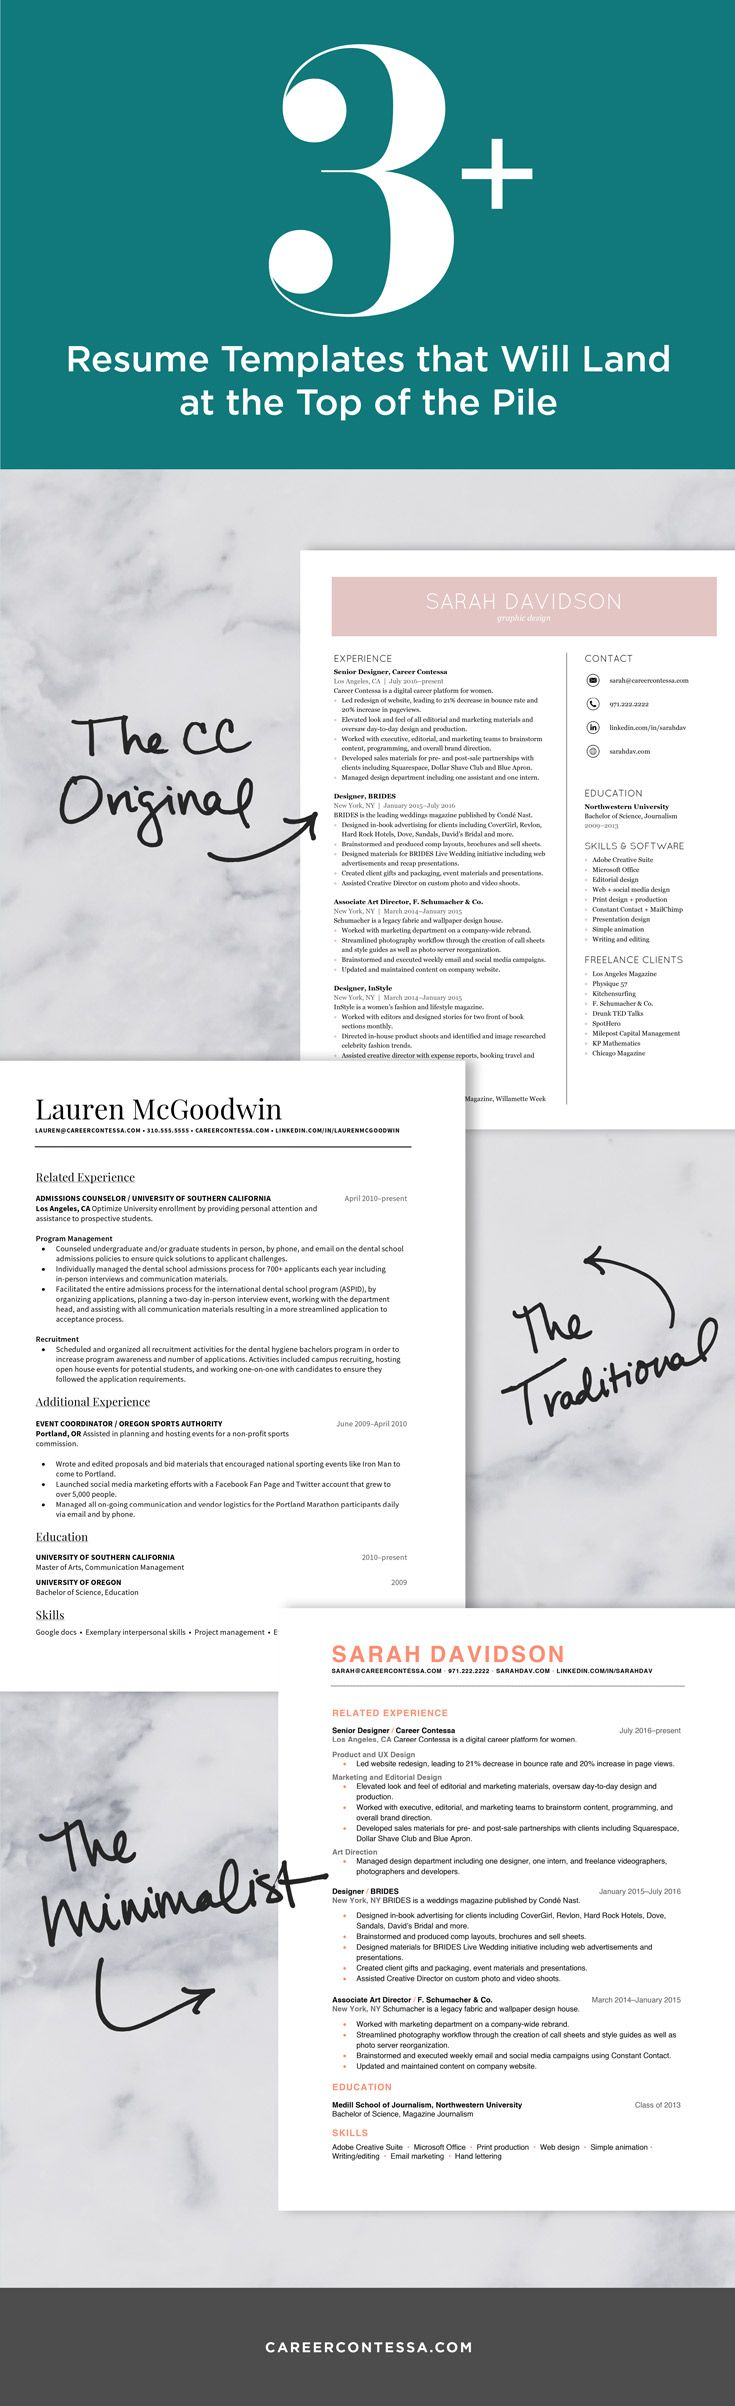 186 best RESUMES images on Pinterest